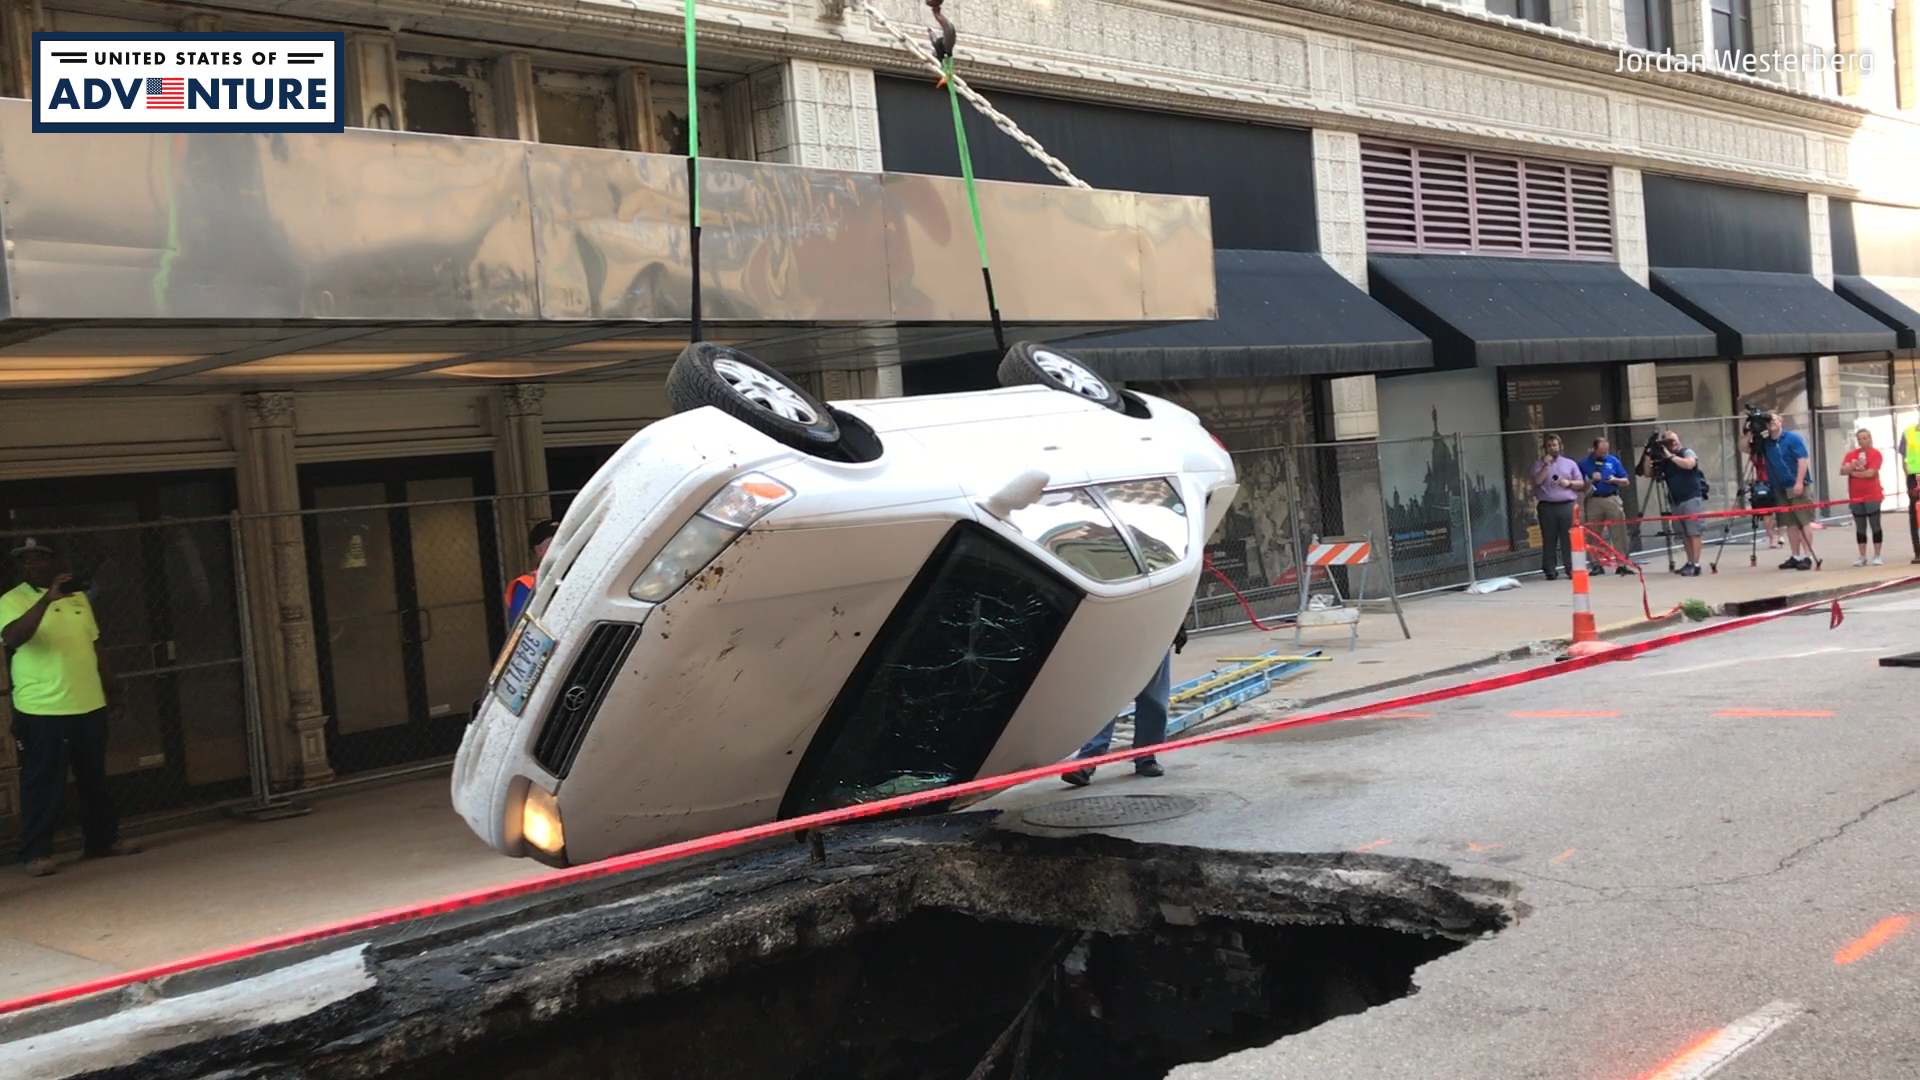 Giant Sinkhole Swallows Car in St. Louis